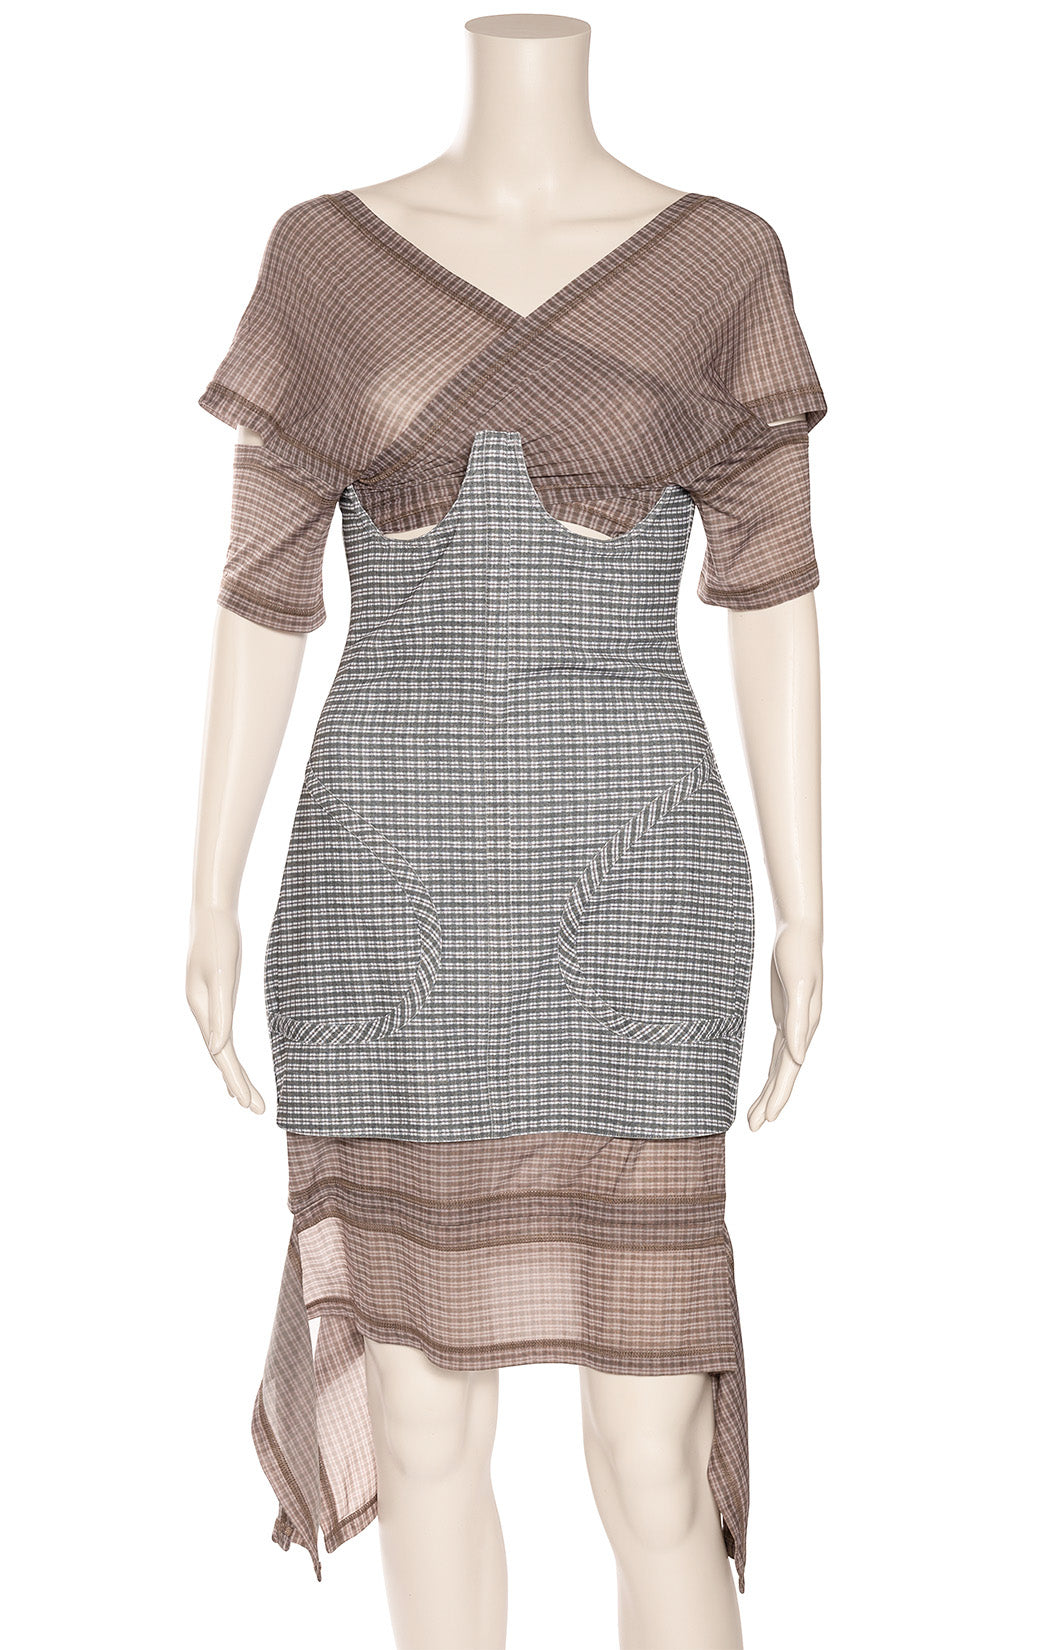 CHAROLETTE KNOWLES  Dress Size: Medium